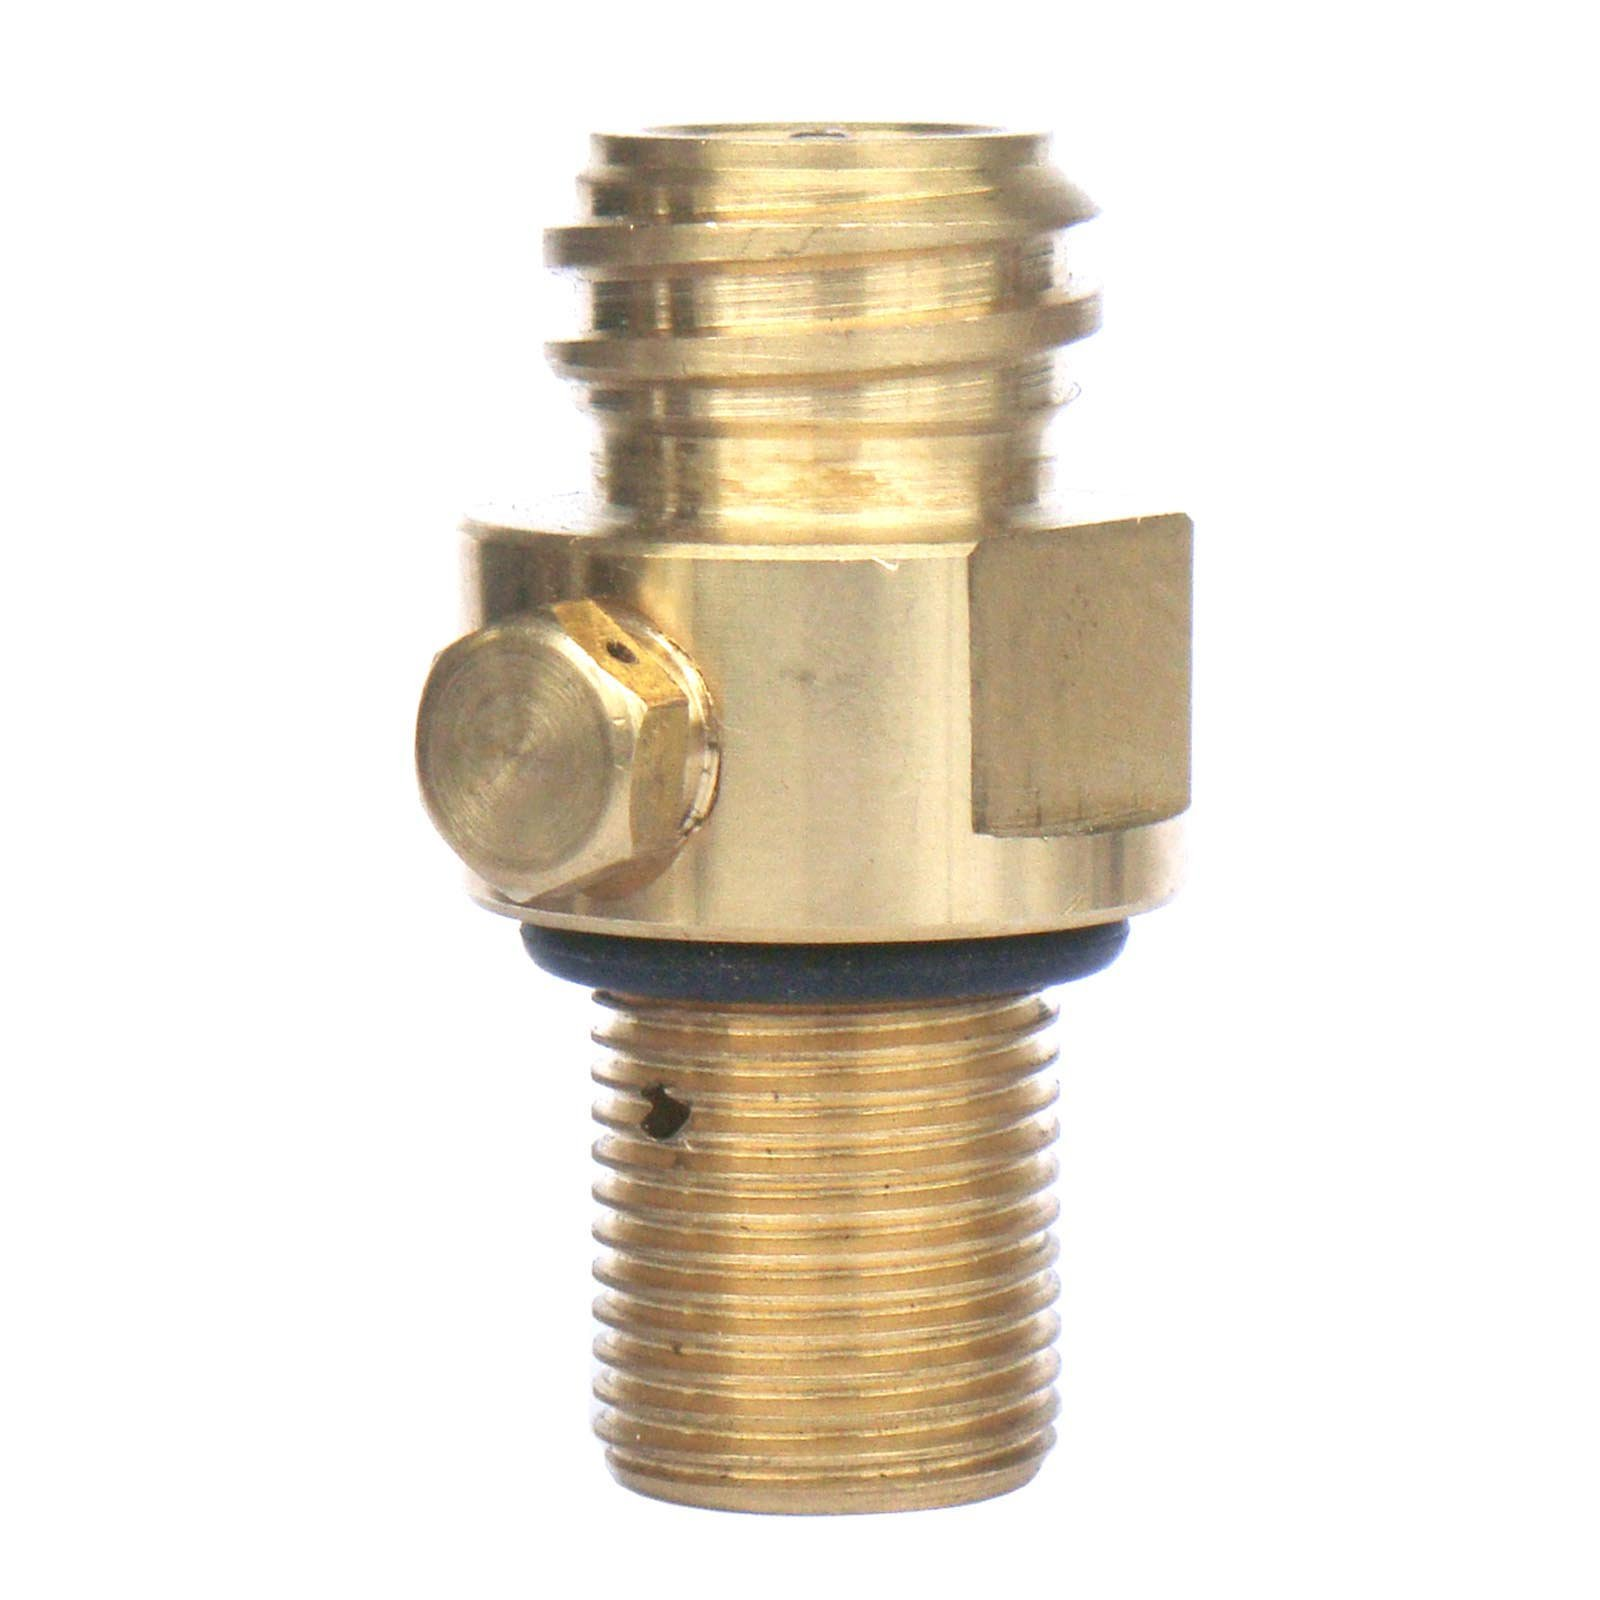 New CO2 Tank Brass Soda Pin Valve